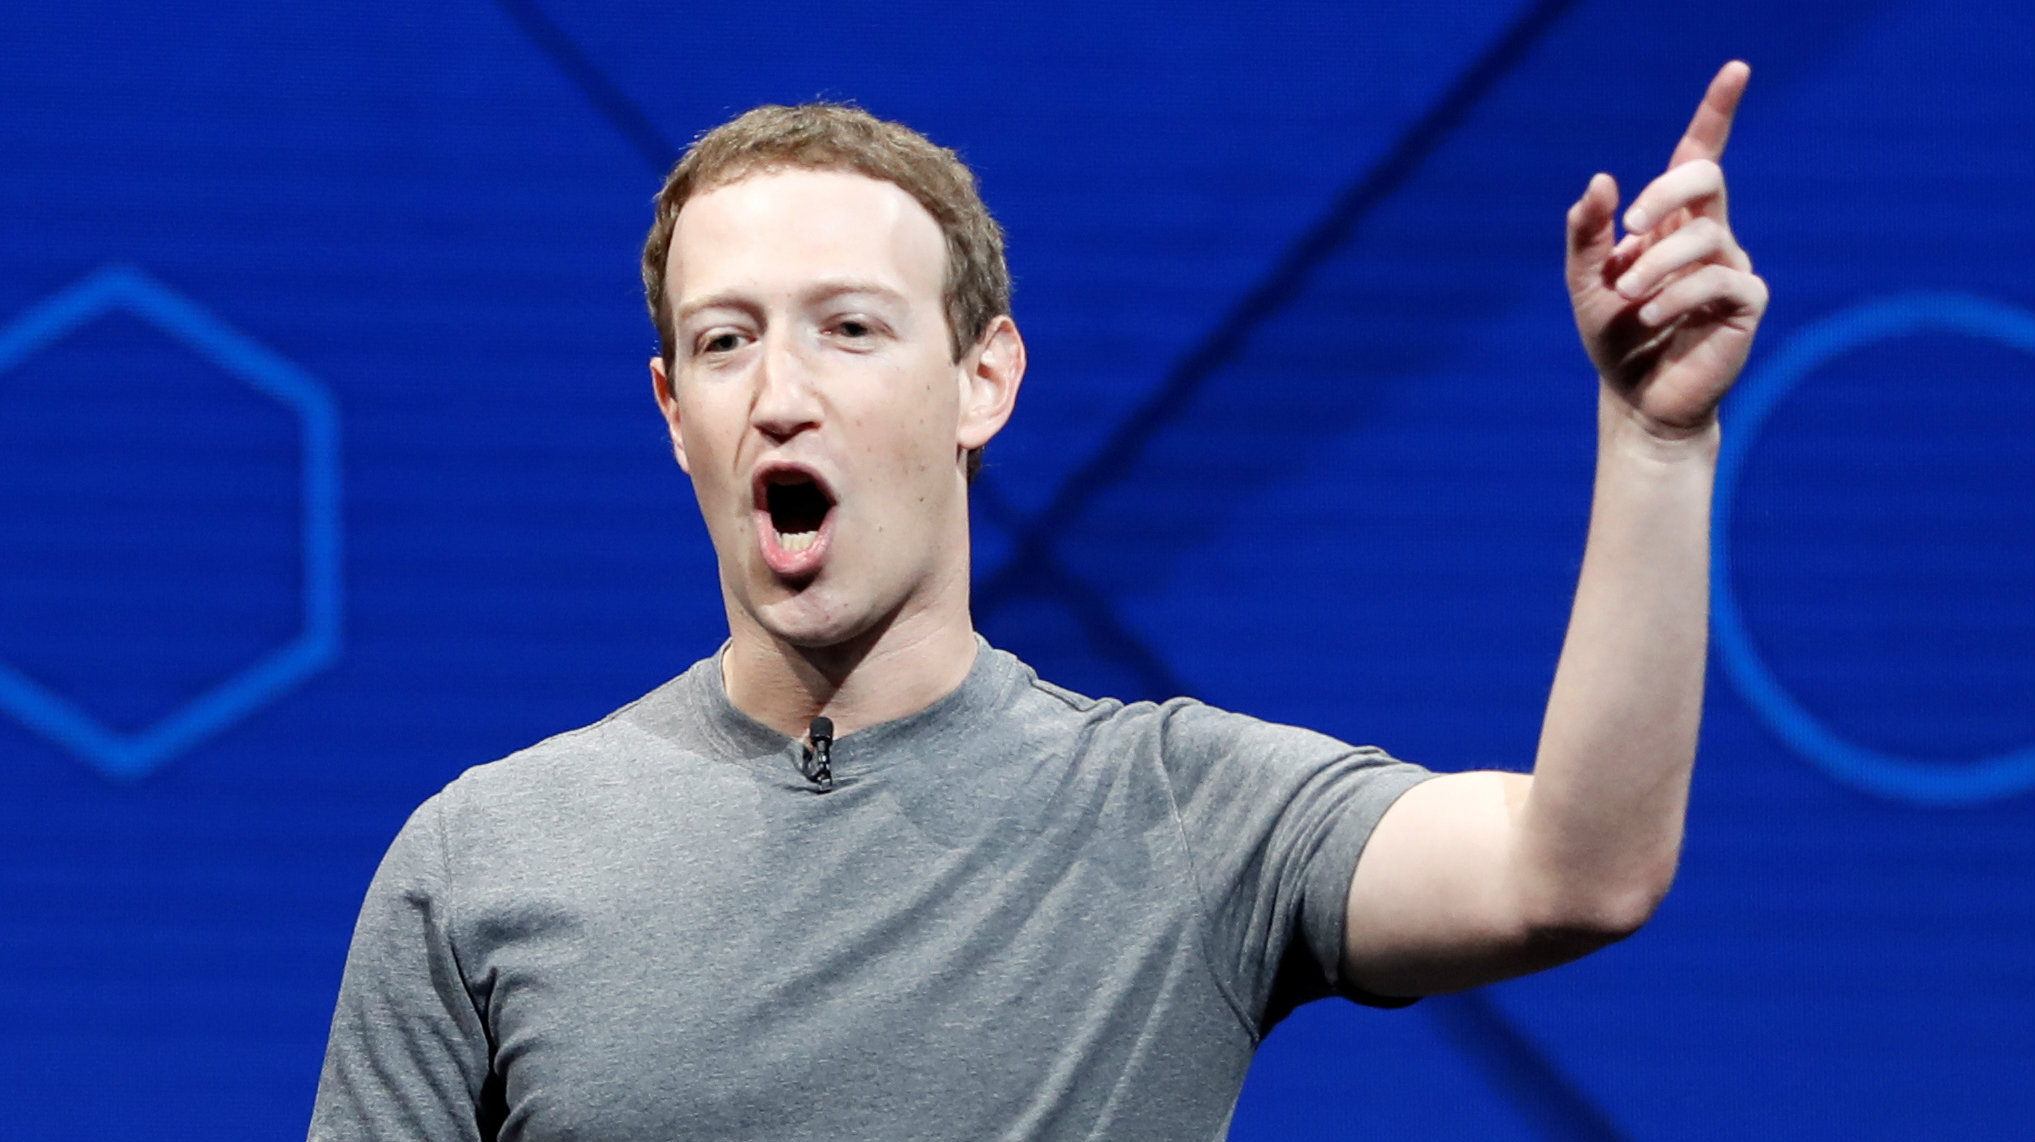 Facebook Founder and CEO Mark Zuckerberg speaks on stage during the annual Facebook F8 developers conference in San Jose, California